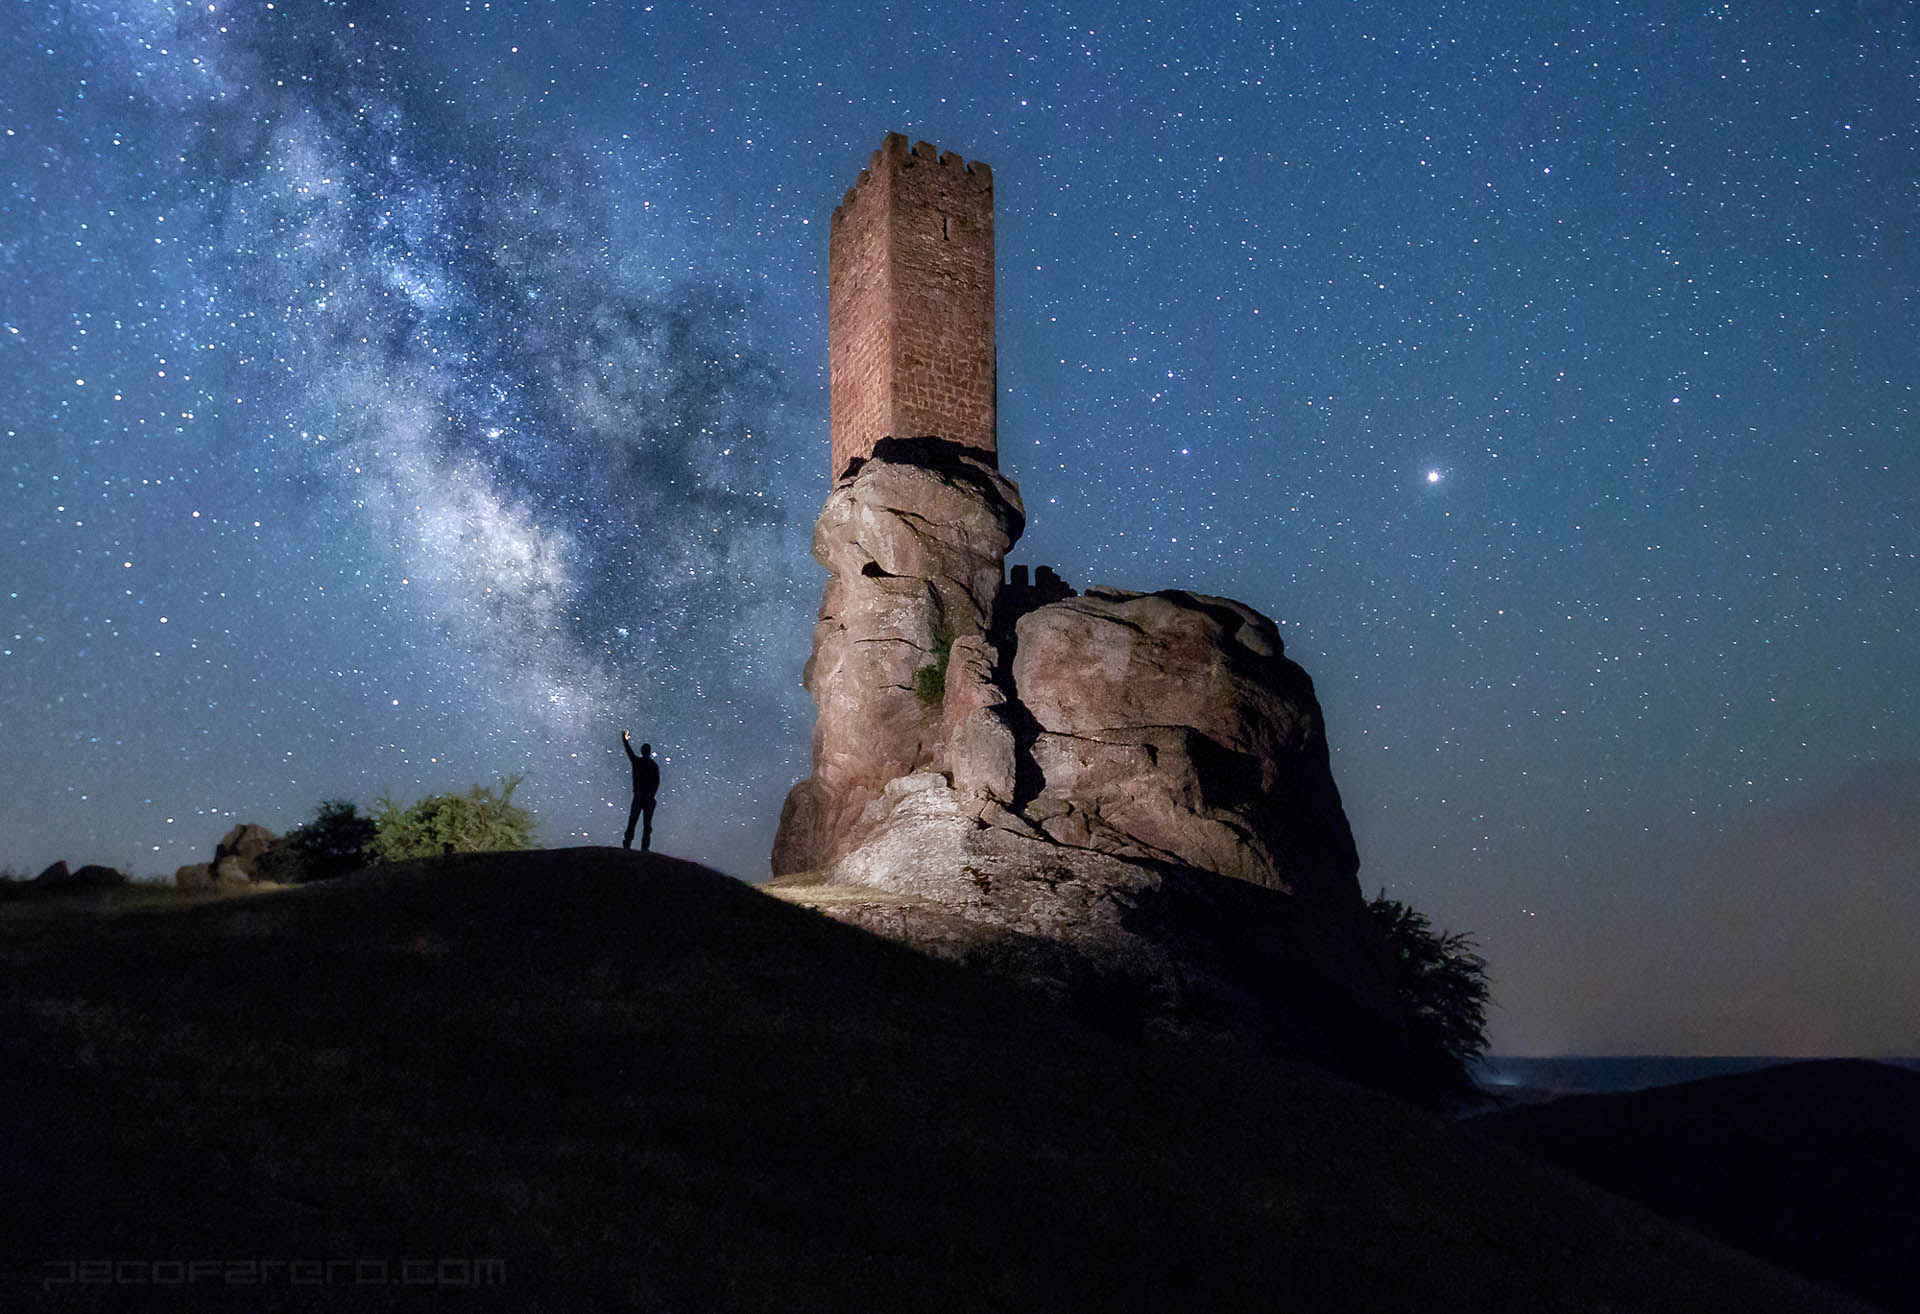 Milky Way Castle Starry night sky sense of scale Zafra Castle Game of Thrones